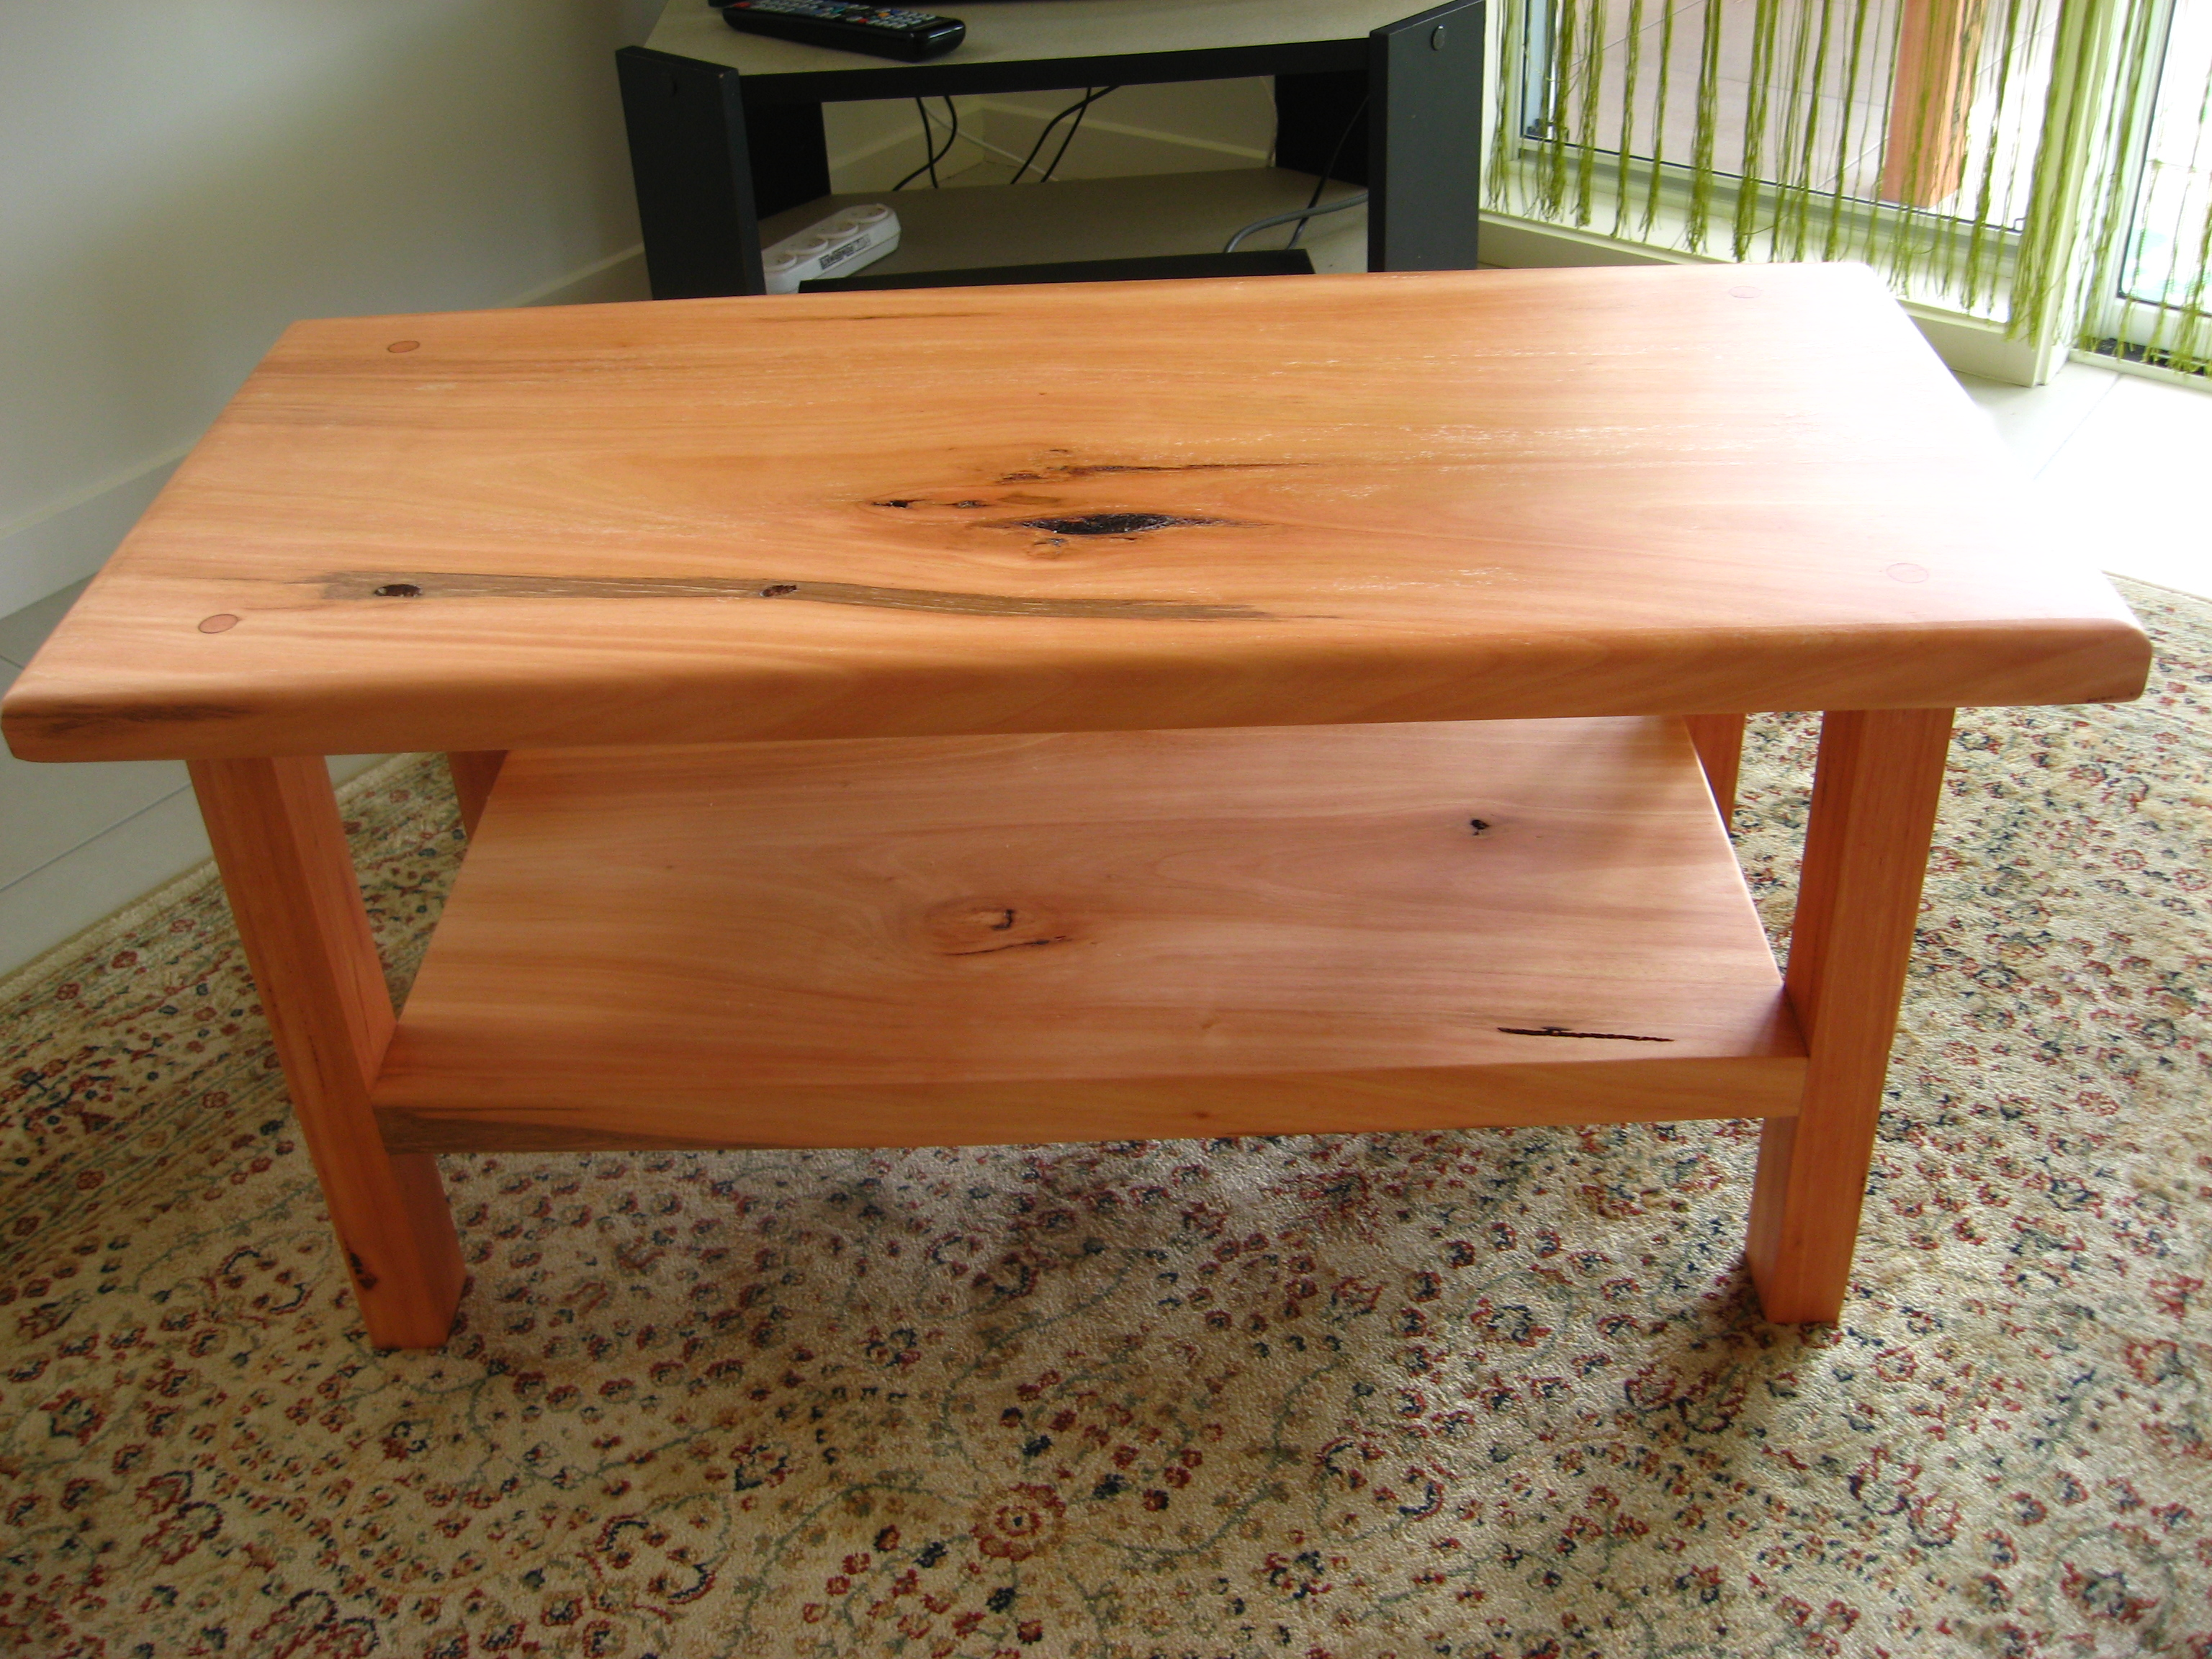 wooden coffee table design plans photo - 2